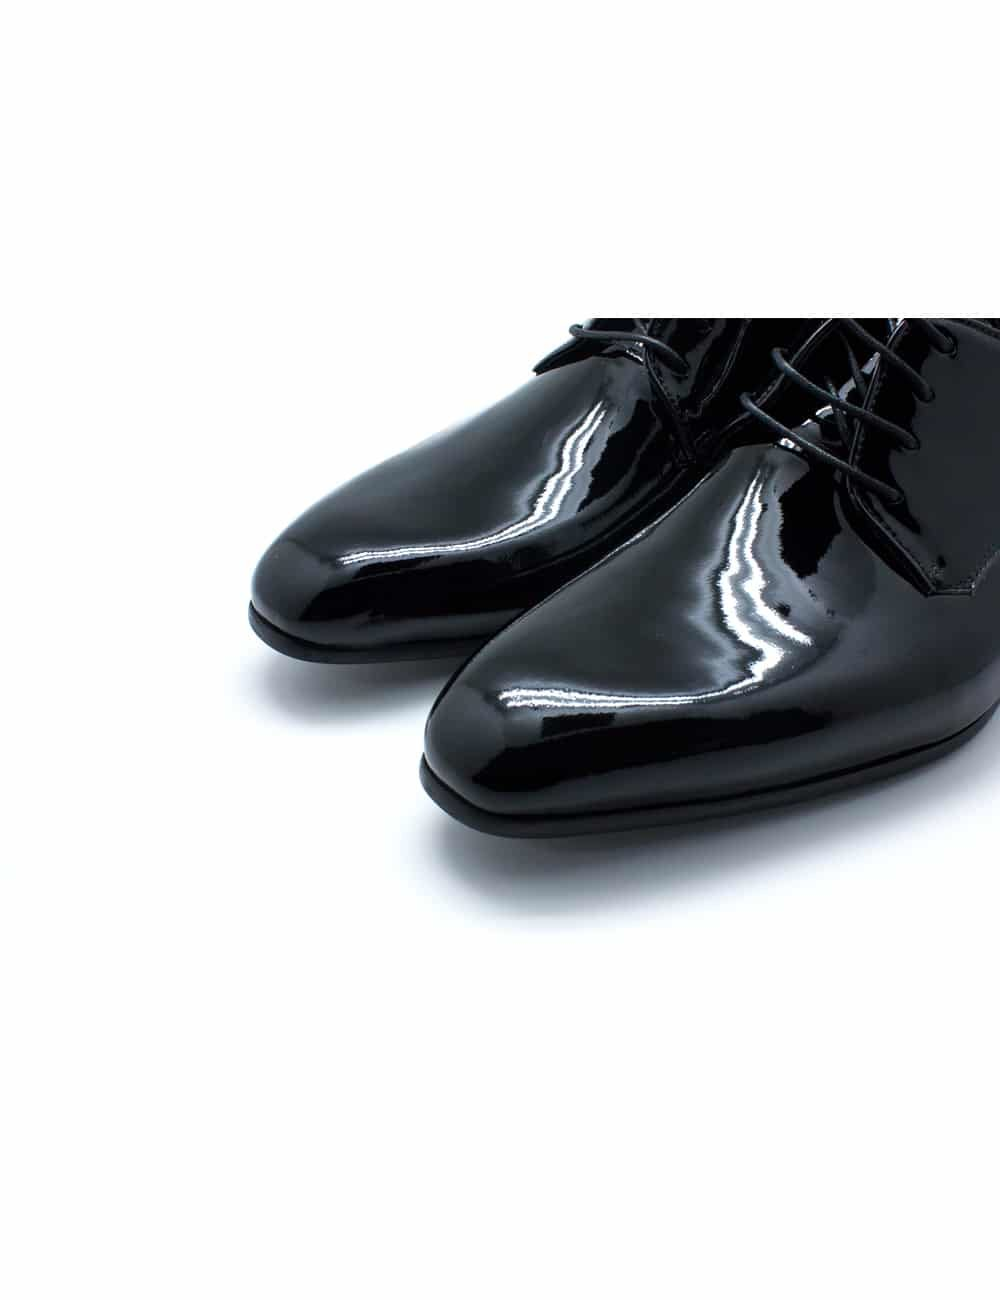 Black Patent Leather Oxford Plain Toe F13A1.2